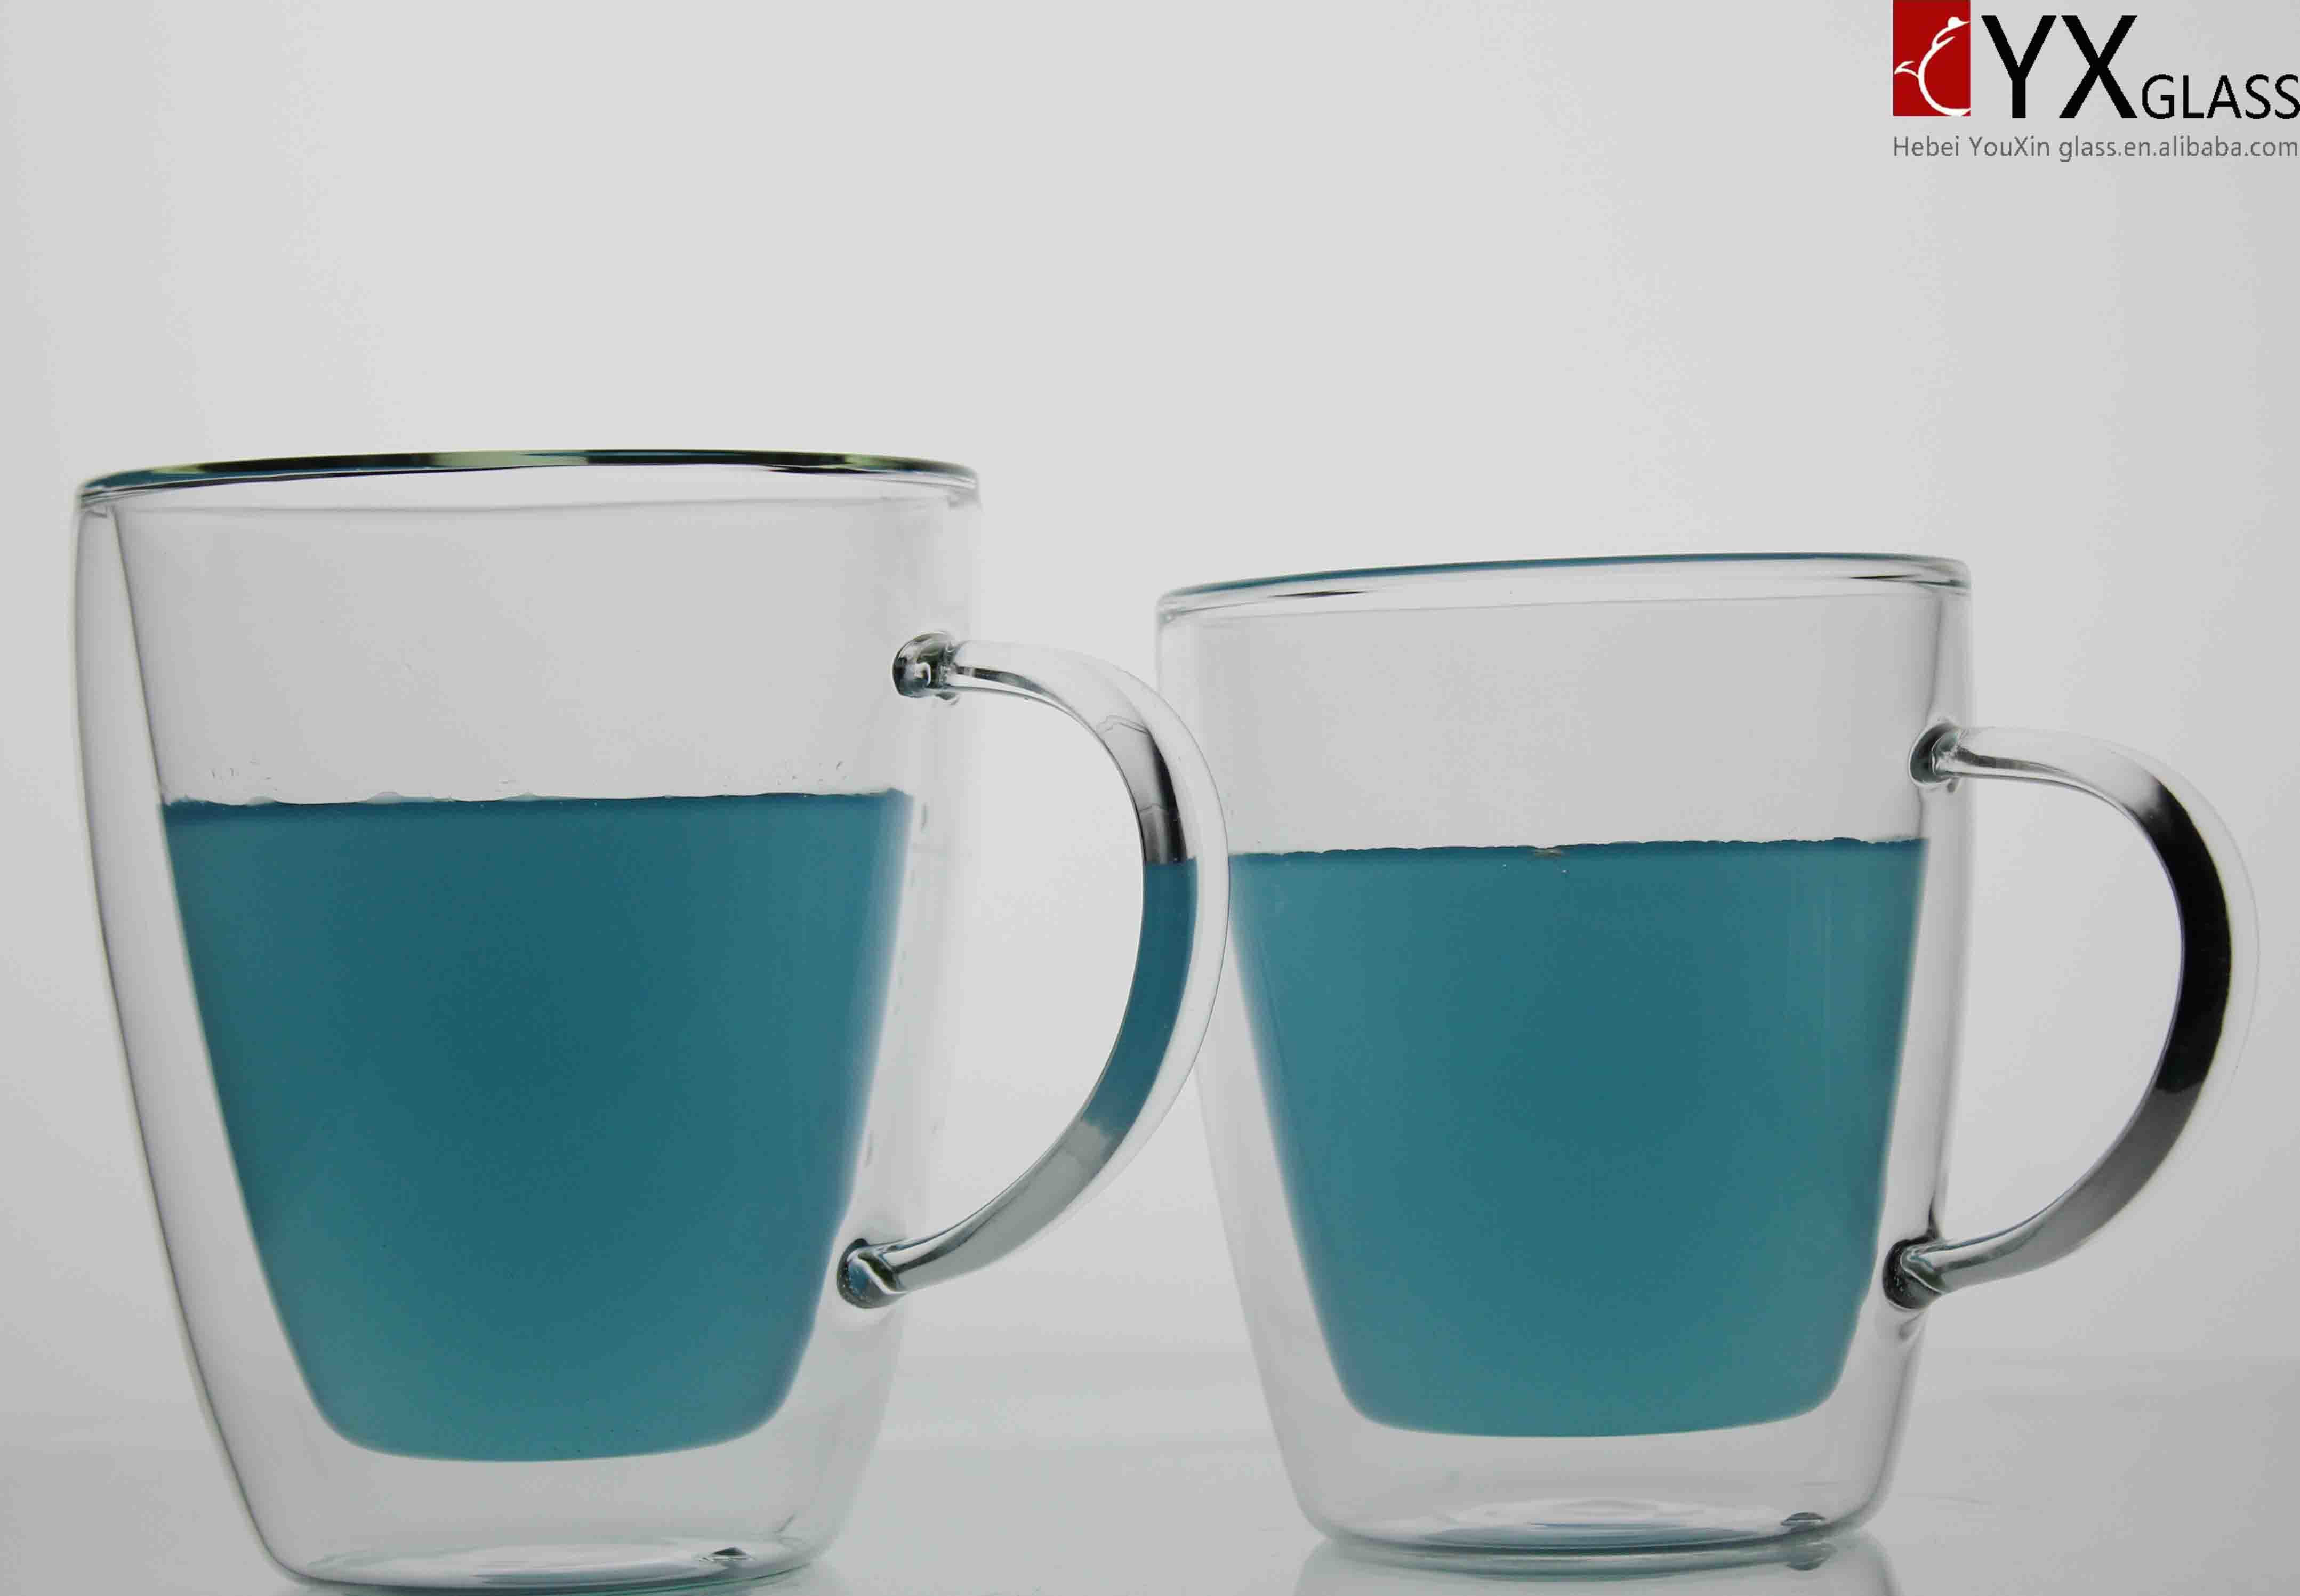 Double Wall Glass Coffee Cup/Double Wall Glass Coffee Mug/Double Wall Glass Tea Mug 350ml, 450ml, 500ml Available